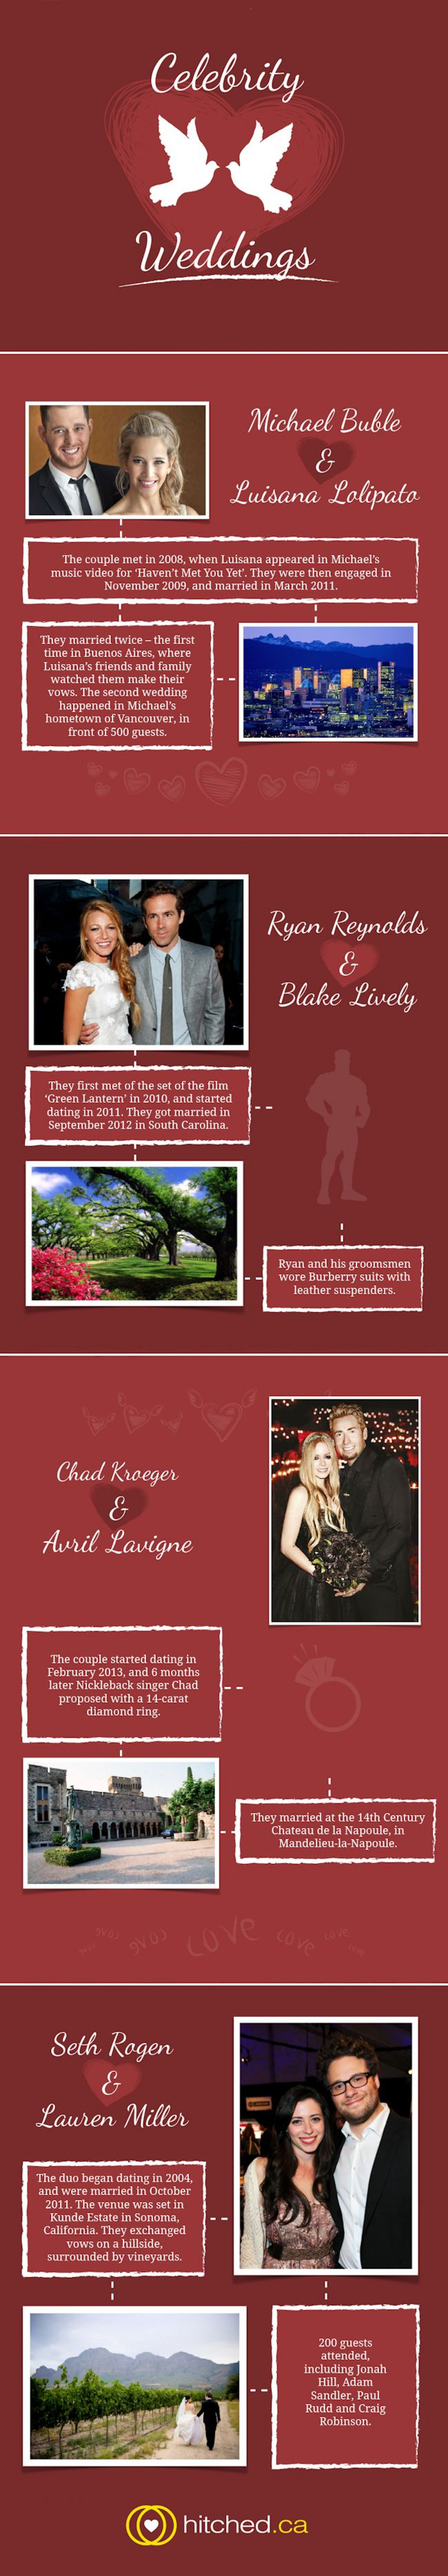 Celebrity Weddings Infographic